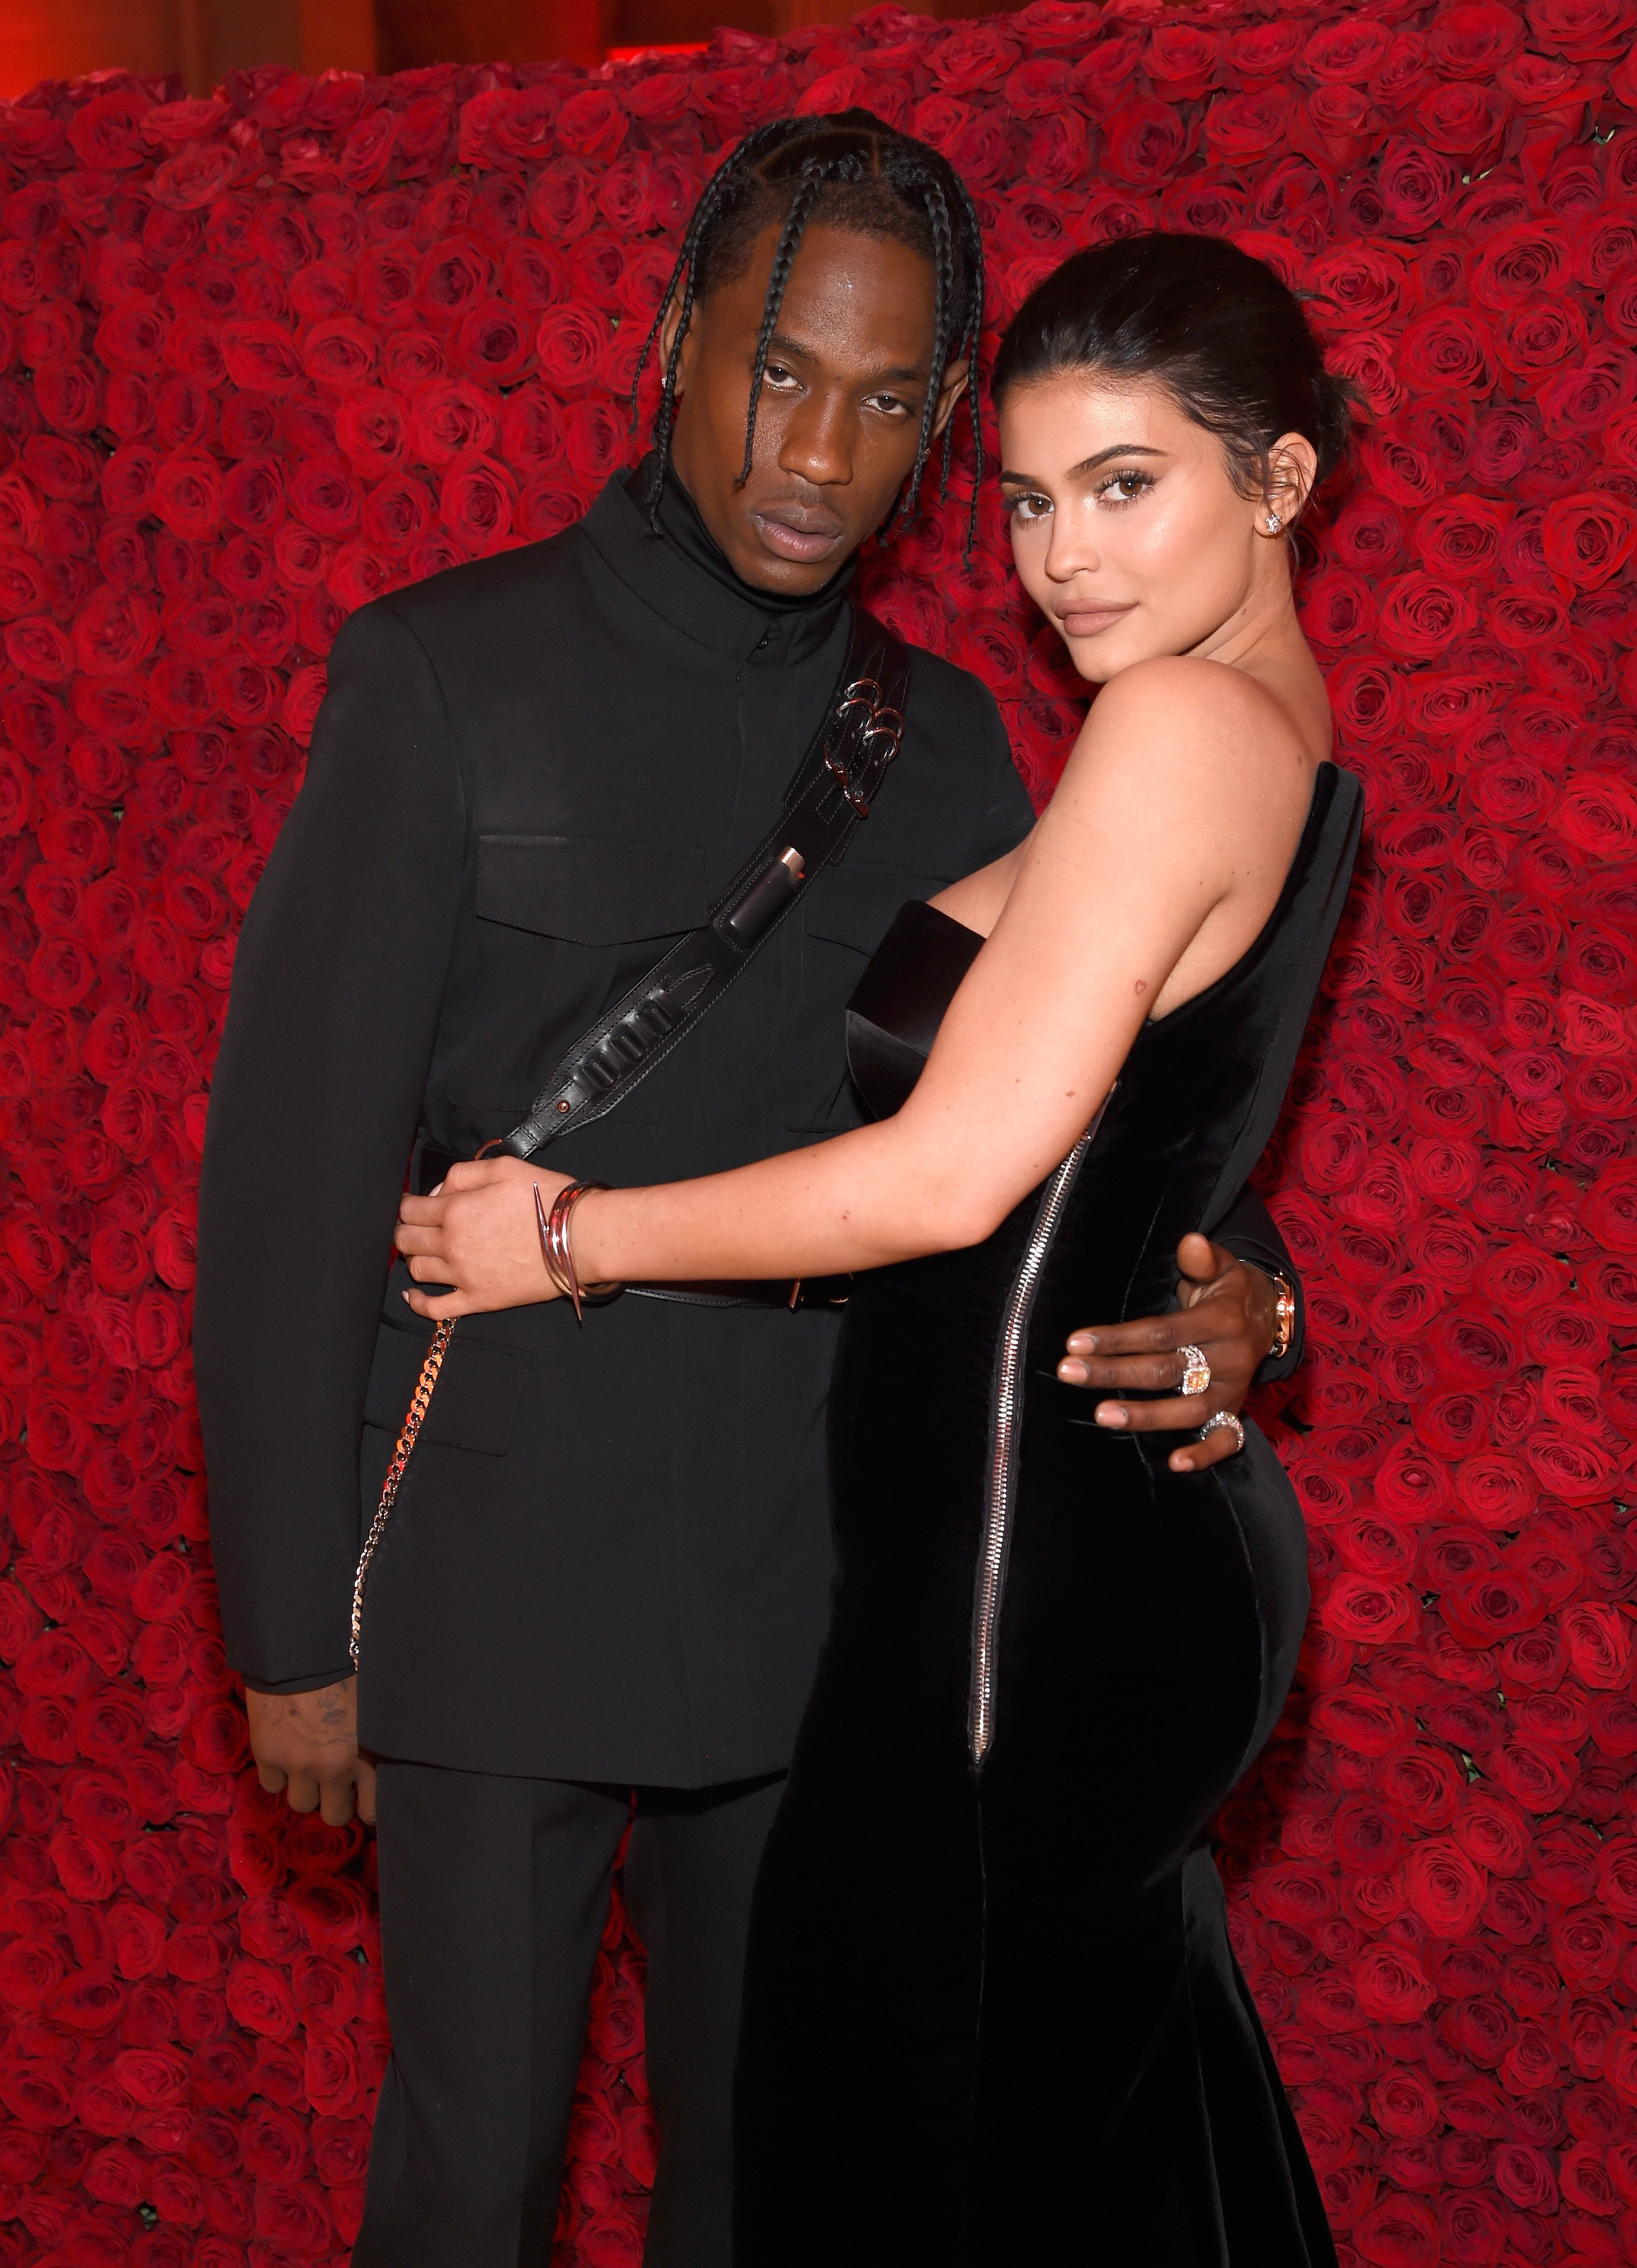 Kylie Jenner & Travis Scott at the MET Gala in New York City on May 7, 2018. |Photo: Getty Images